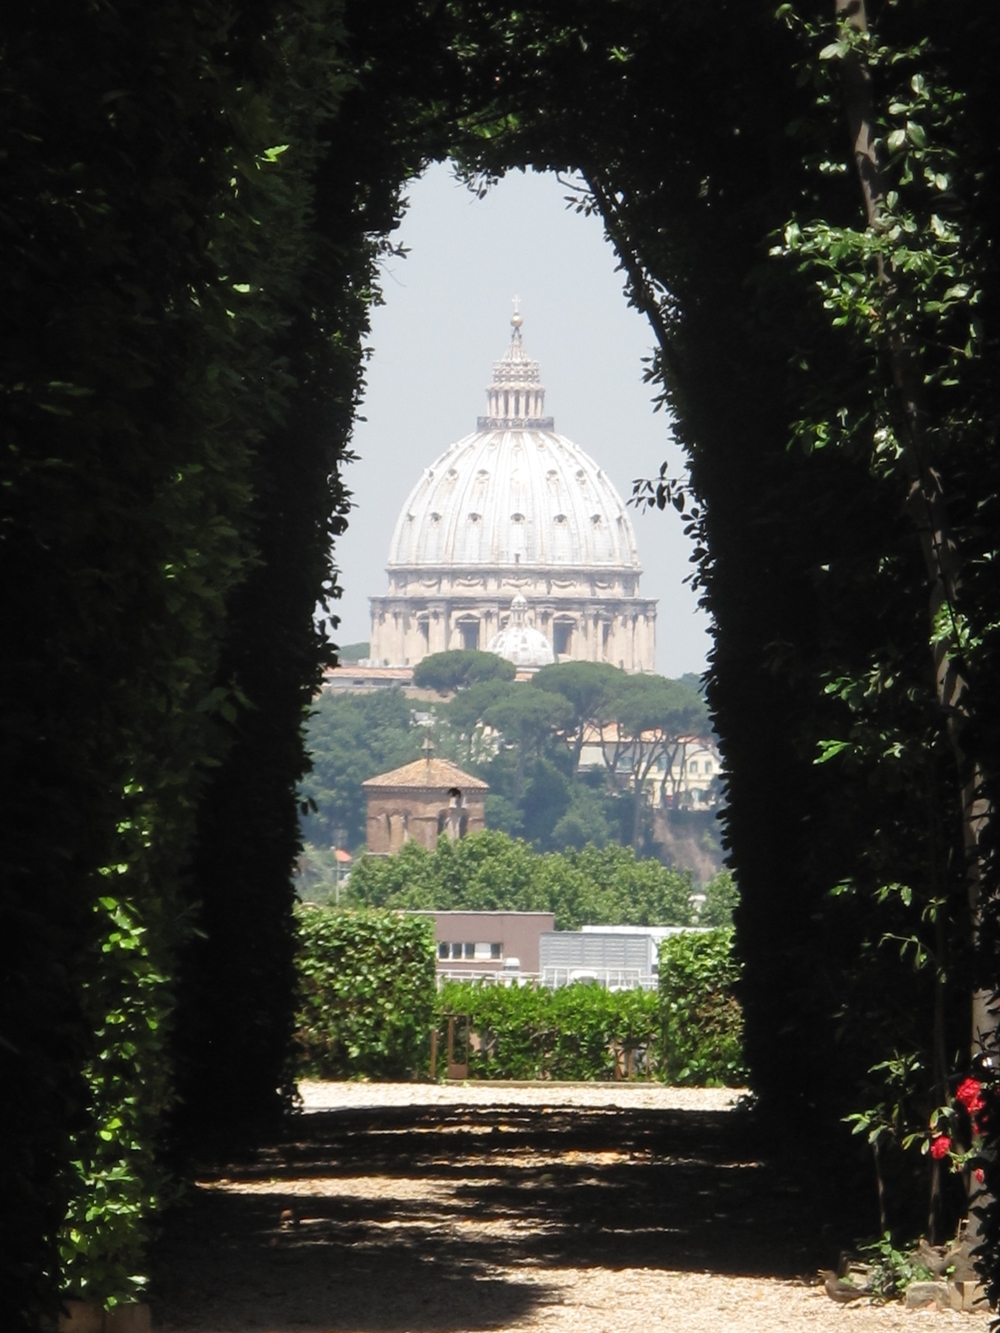 View of St Peters through the knights of malta keyhole, Rome